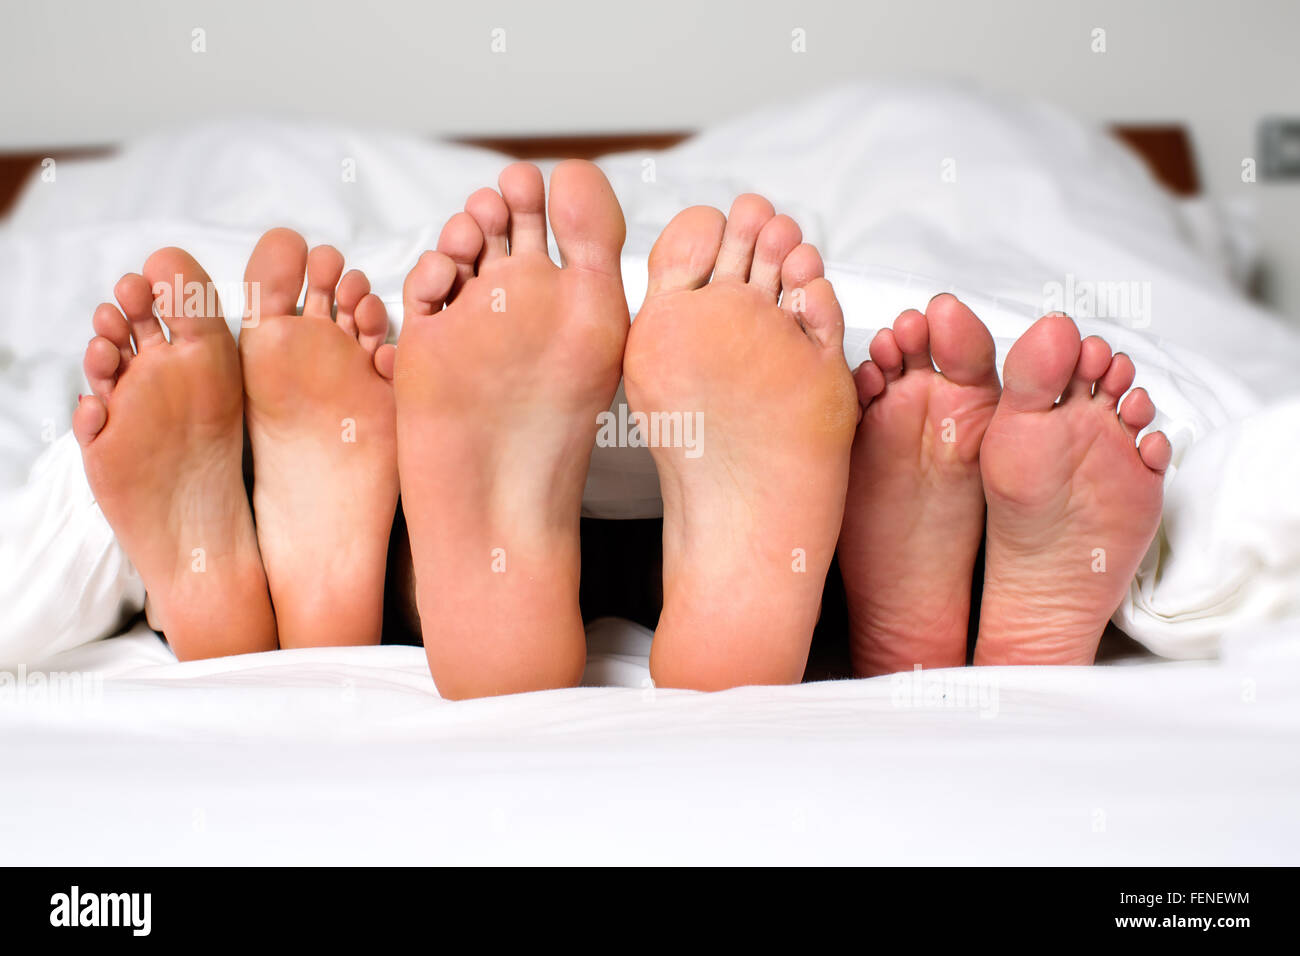 Close-Up Of Bare Feet In Bed Stock Photo